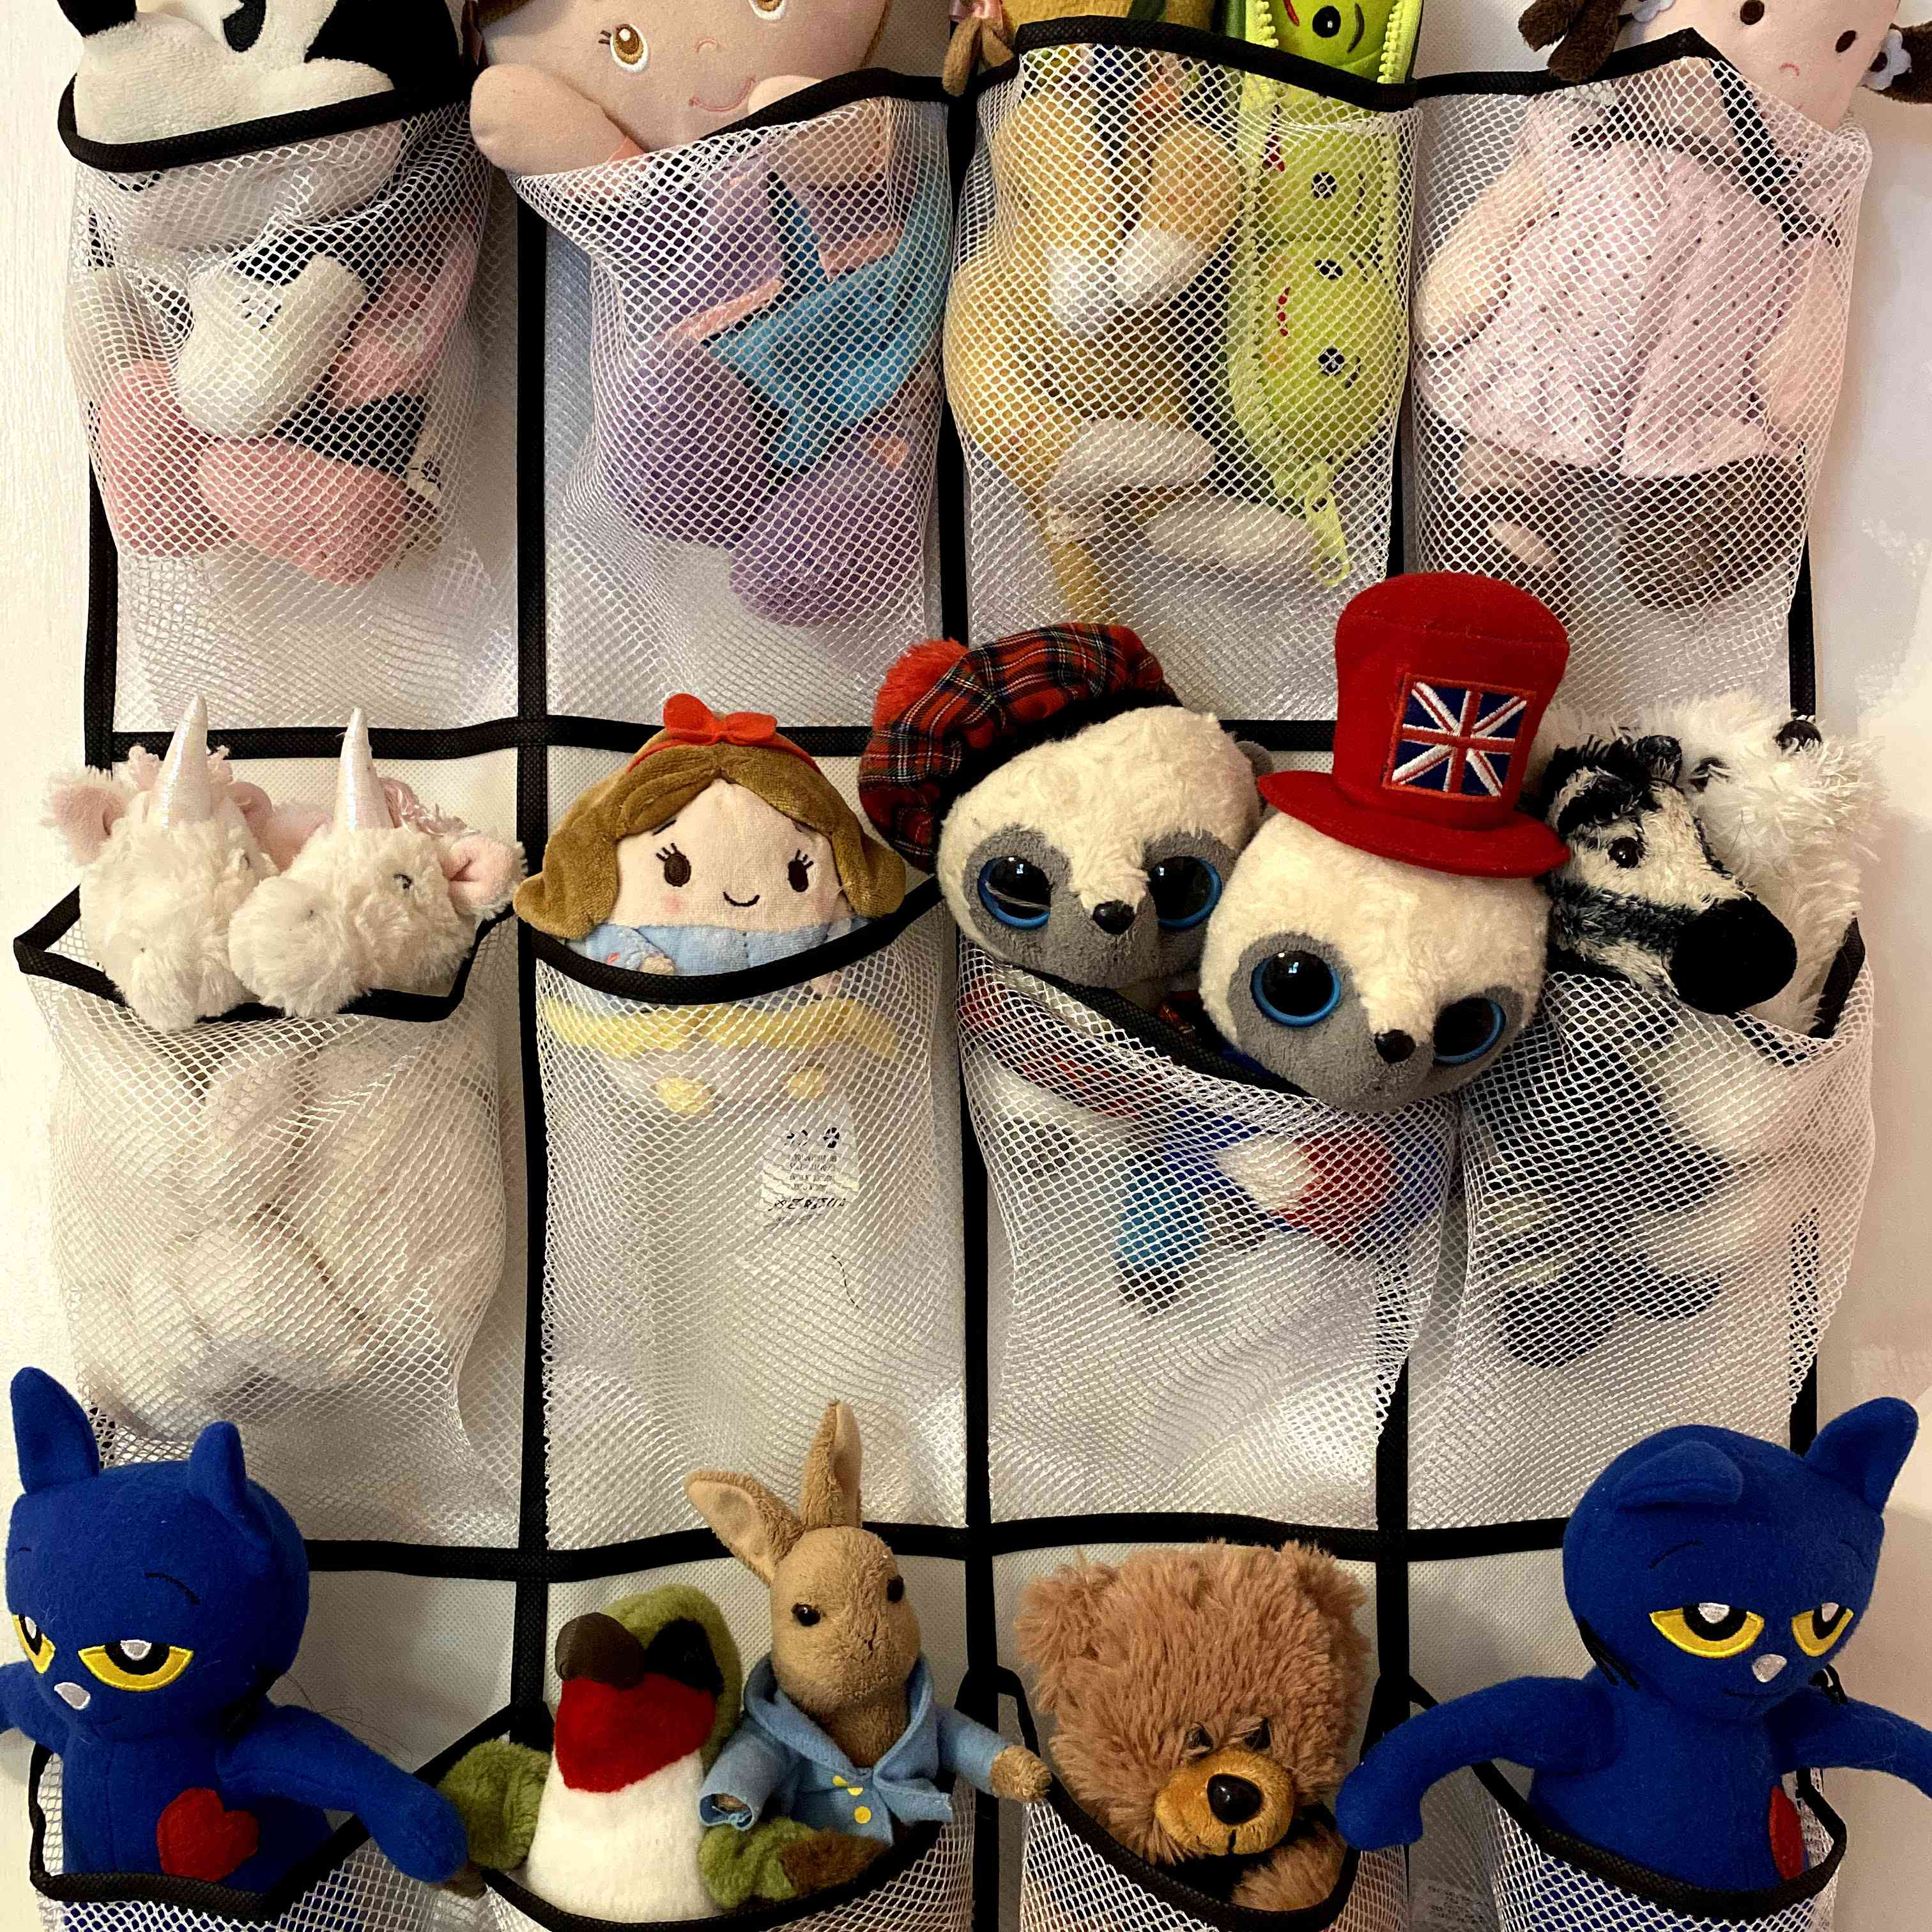 Over the door shoe holder stores stuffed animal toys